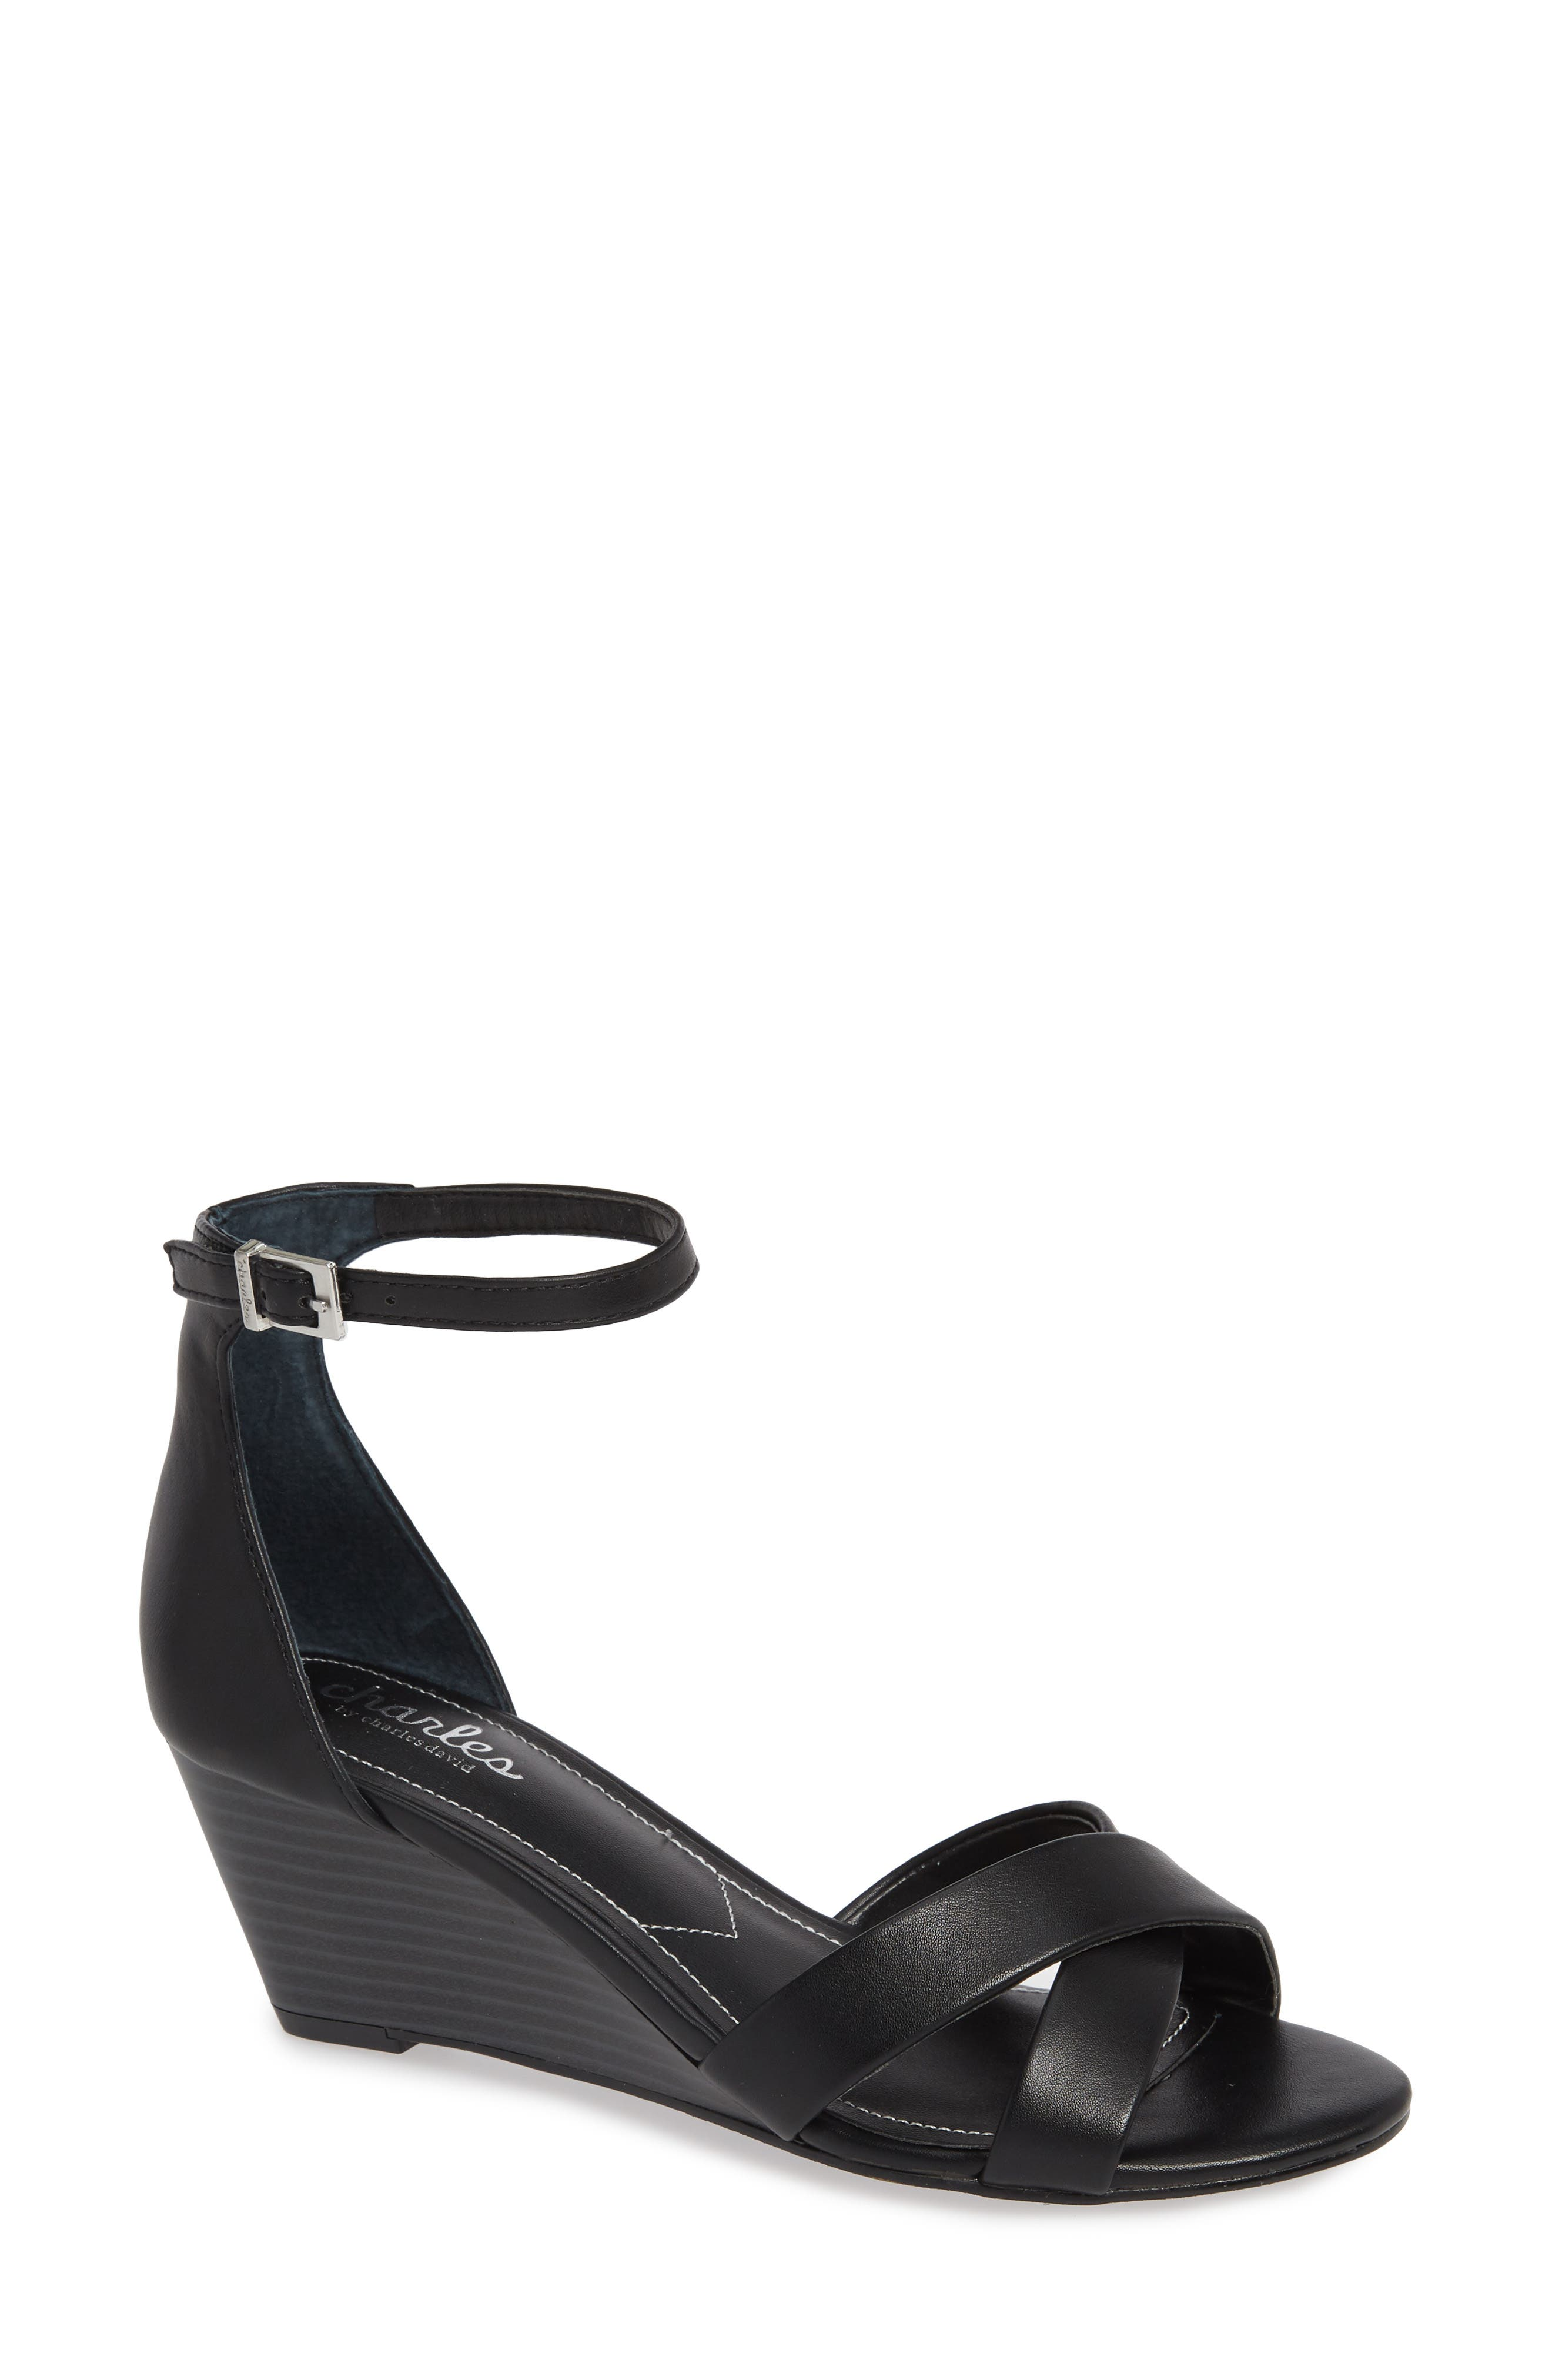 CHARLES BY CHARLES DAVID, Griffin Ankle Strap Wedge, Main thumbnail 1, color, BLACK FAUX LEATHER